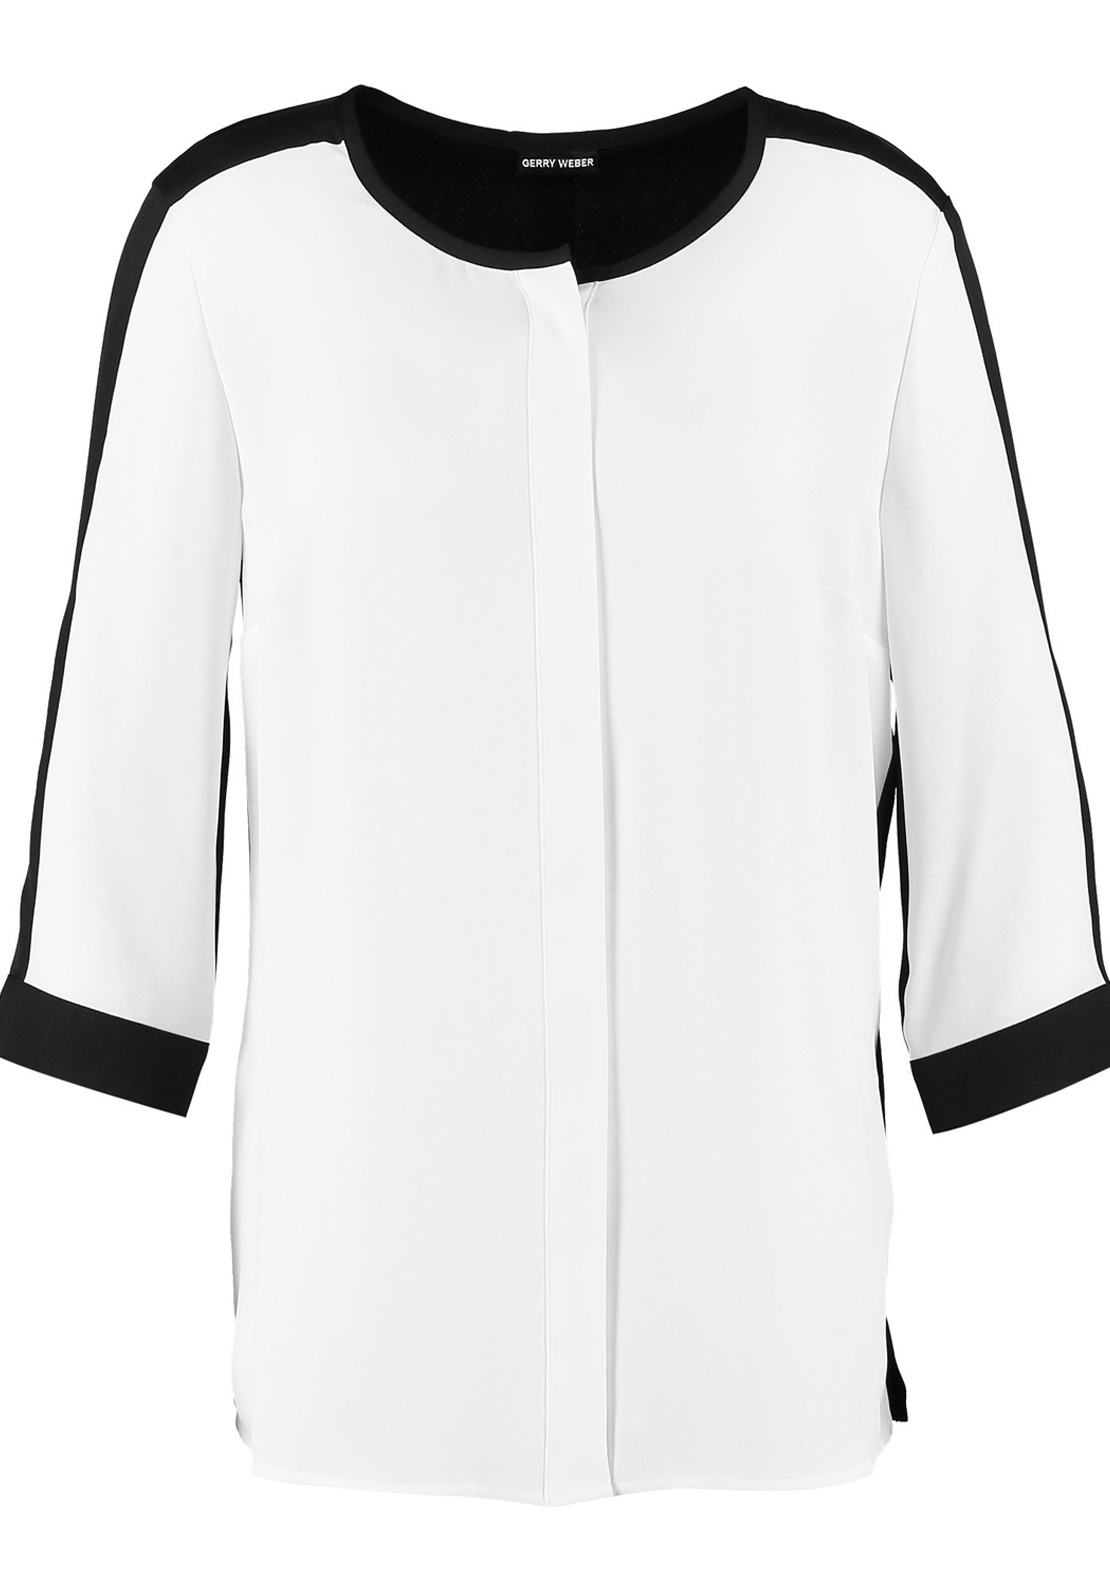 Gerry Weber Relaxed Fit Long Length Blouse, Cream and Black